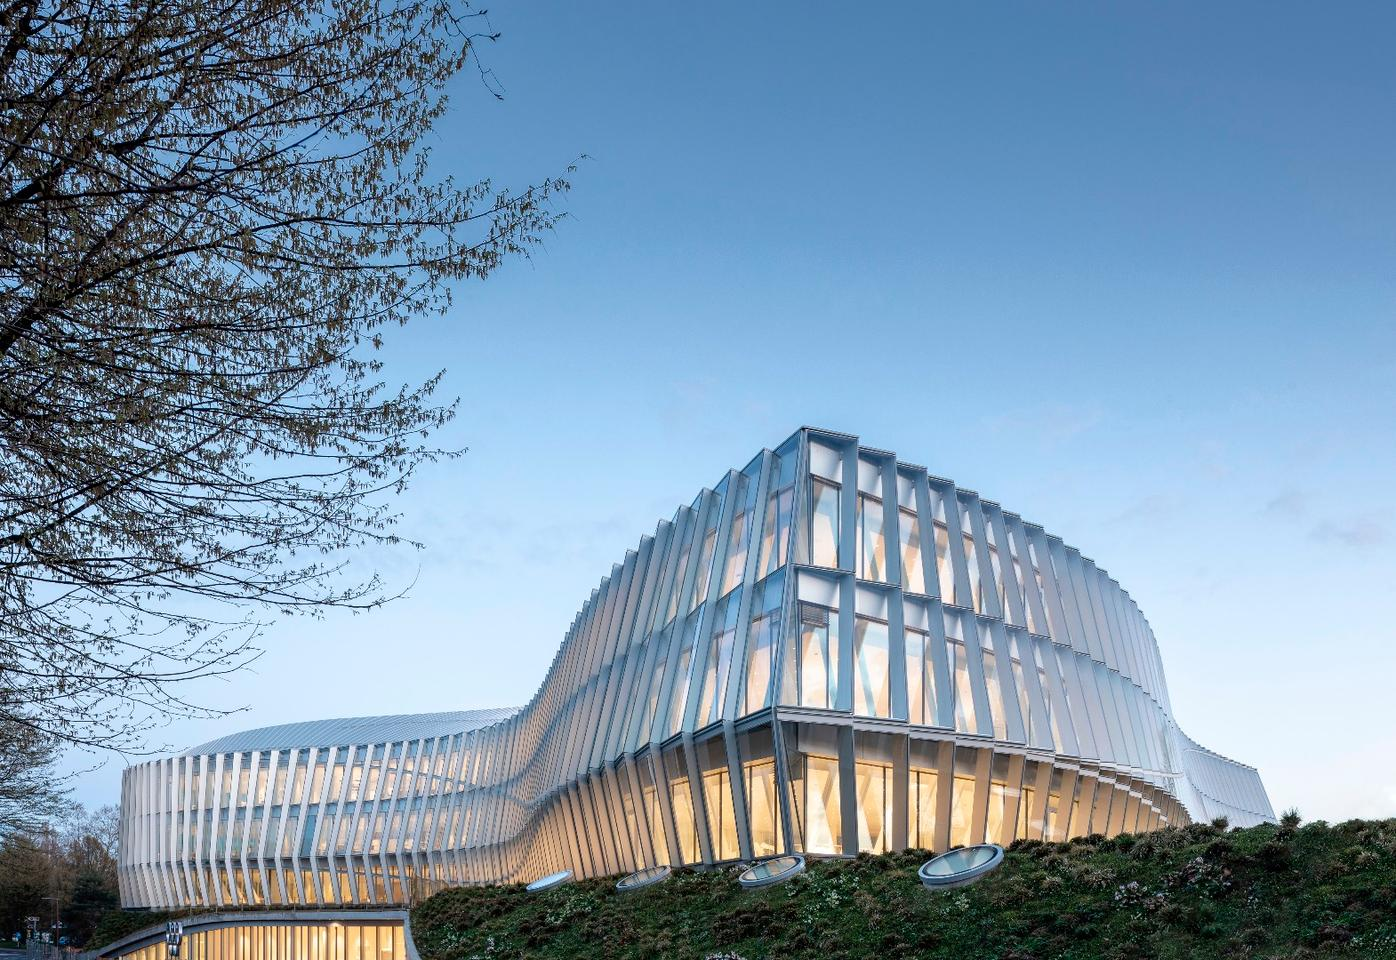 TheOlympic House, by 3XN, is a newsustainable headquarters for the International Olympic Committeein Switzerland